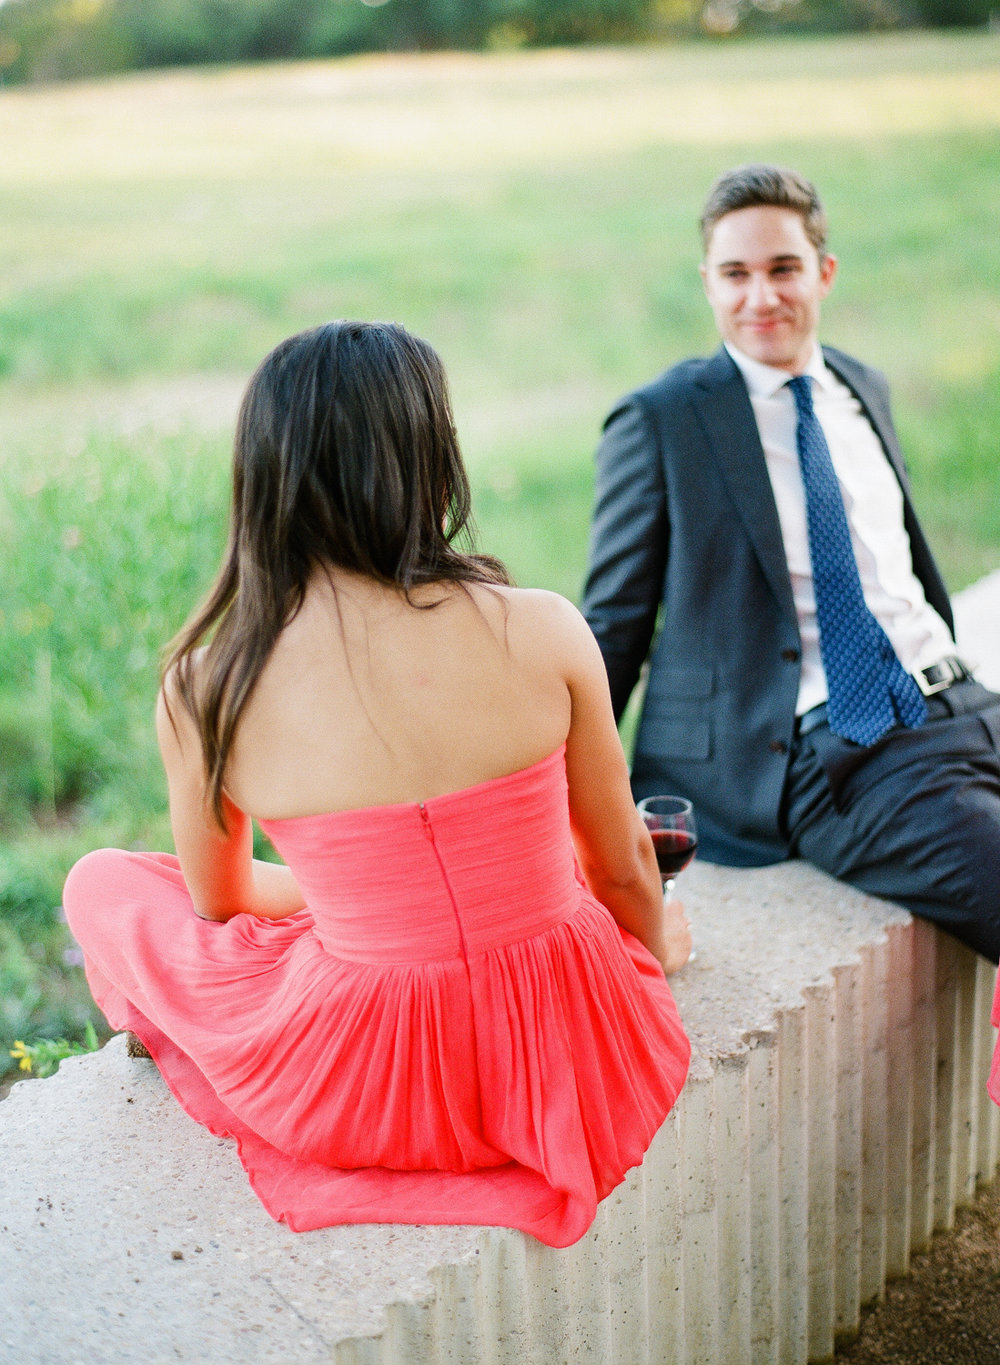 PROSPECT_HOUSE_WEDDING_AUSTIN_TX_BY_MATTHEW_MOORE_PHOTOGRAPHY_00575.jpg